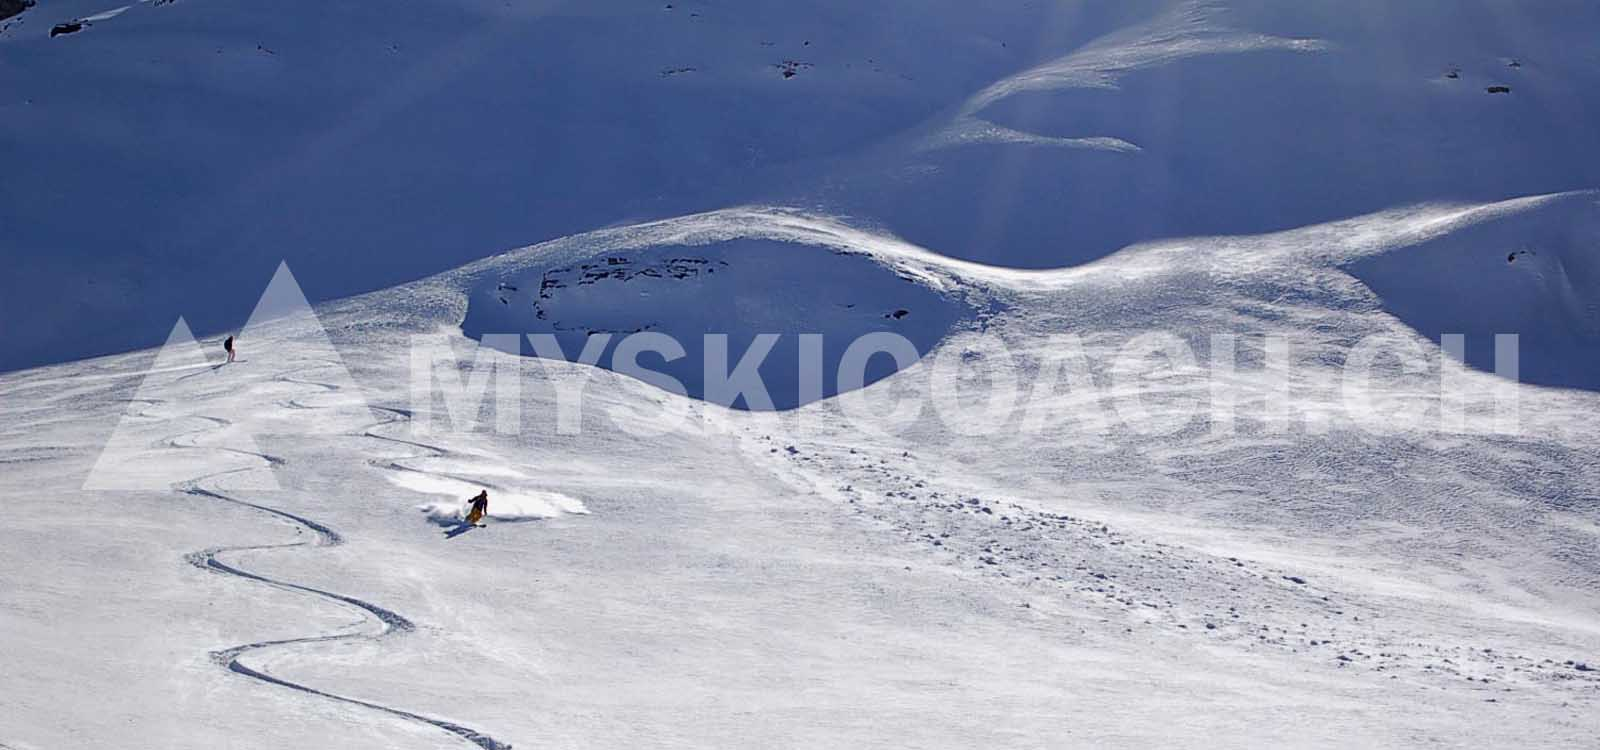 Avalanche course Valais ¦ Basics ¦ Snow Safety Myskicoach.ch